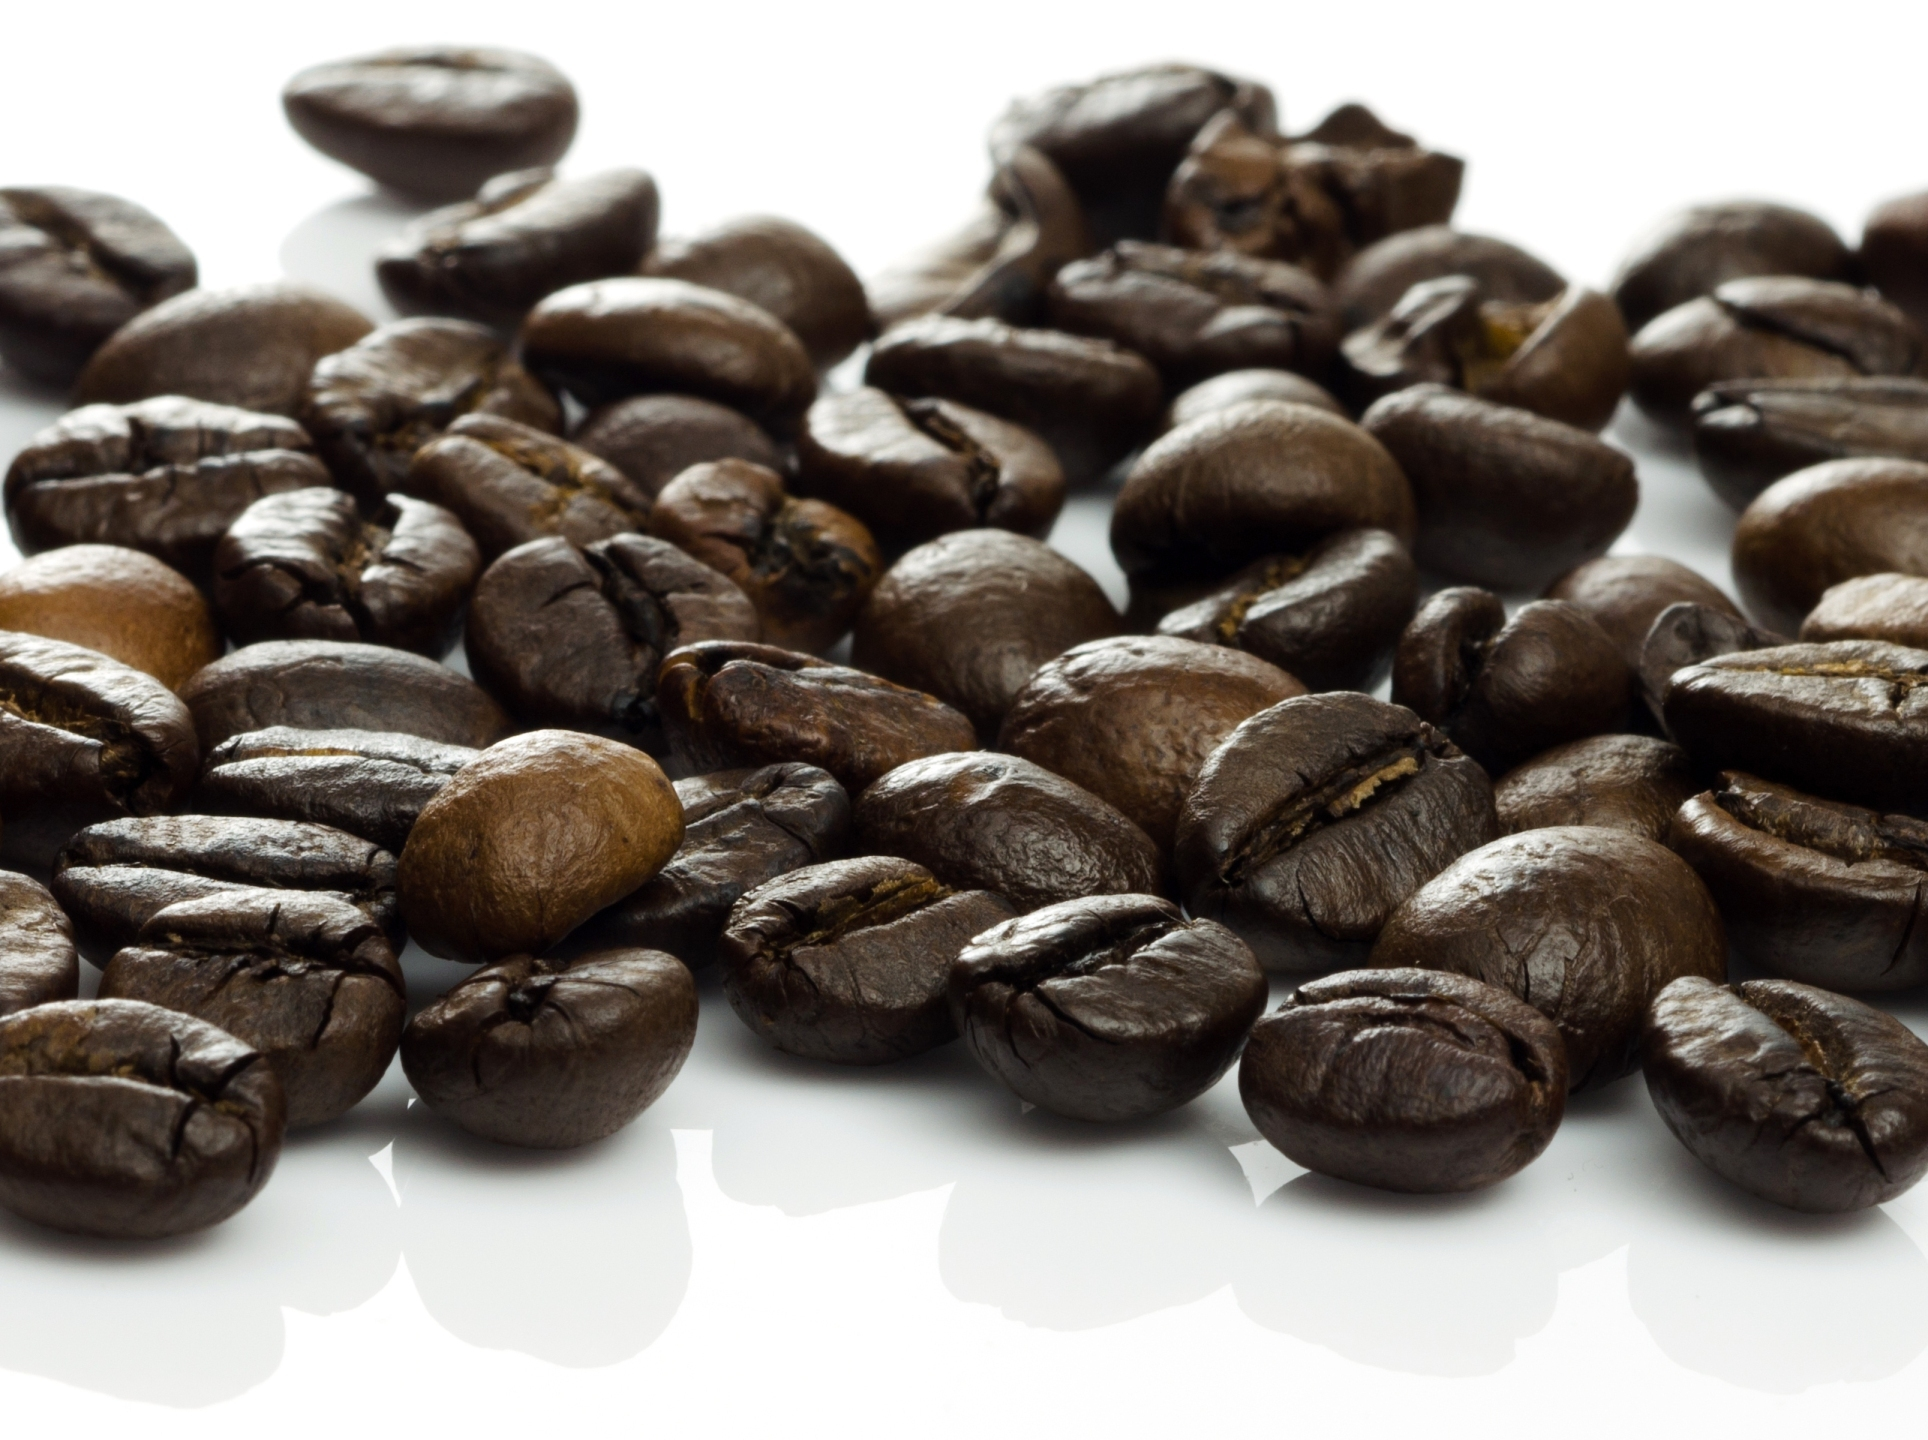 15 Surprising Green Uses for Coffee Grinds (Used and New)